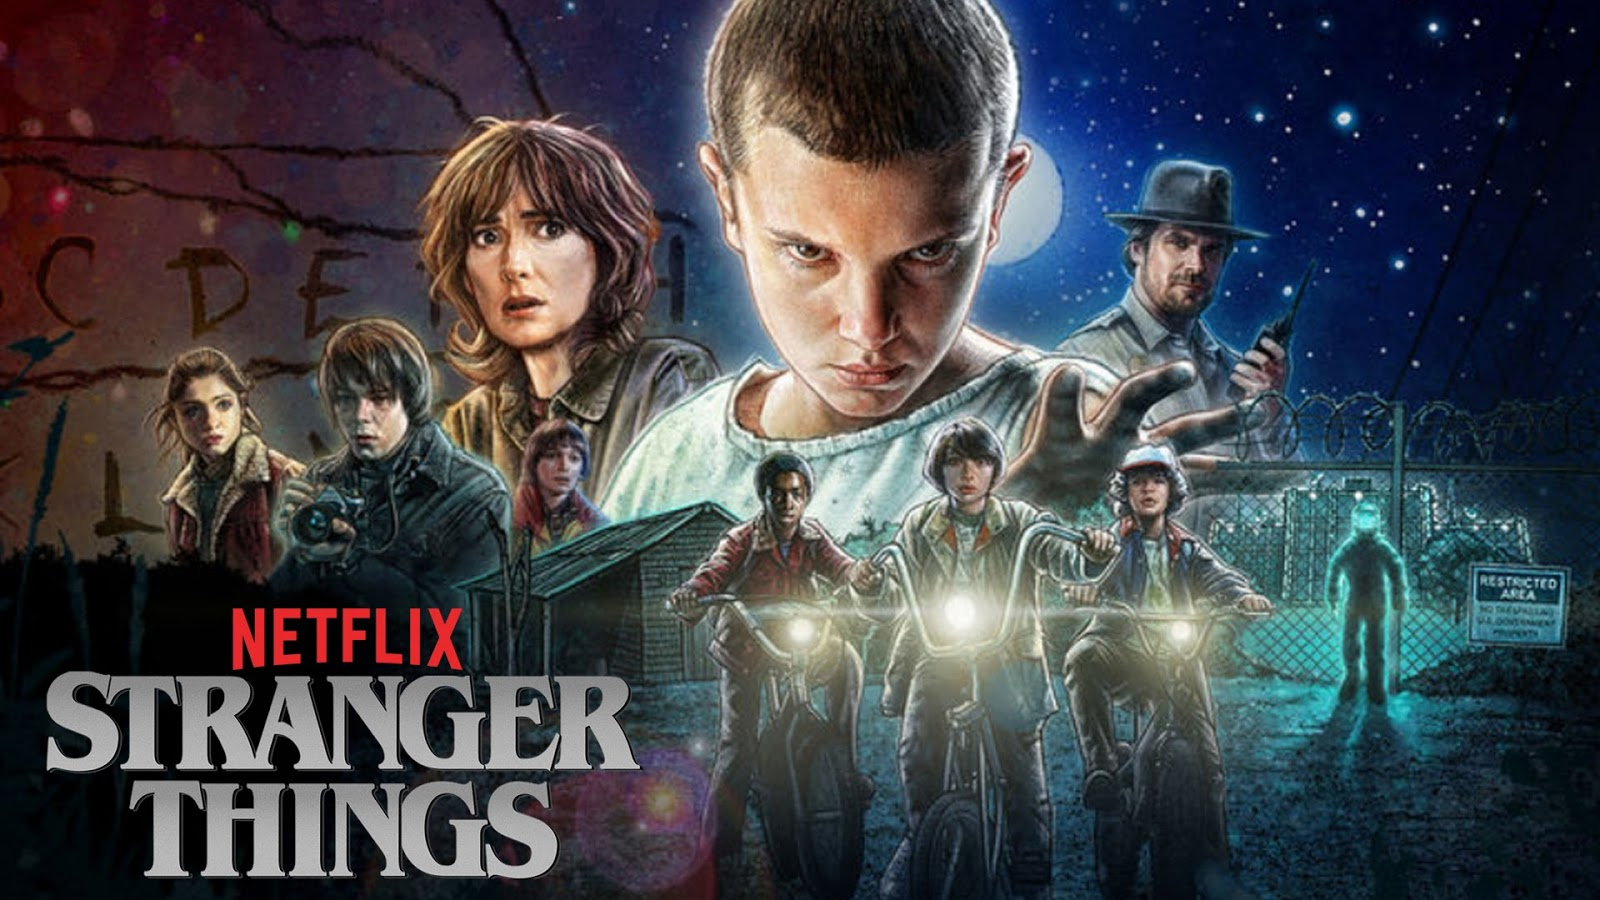 20 Stranger Things Wallpapers Magone 2016